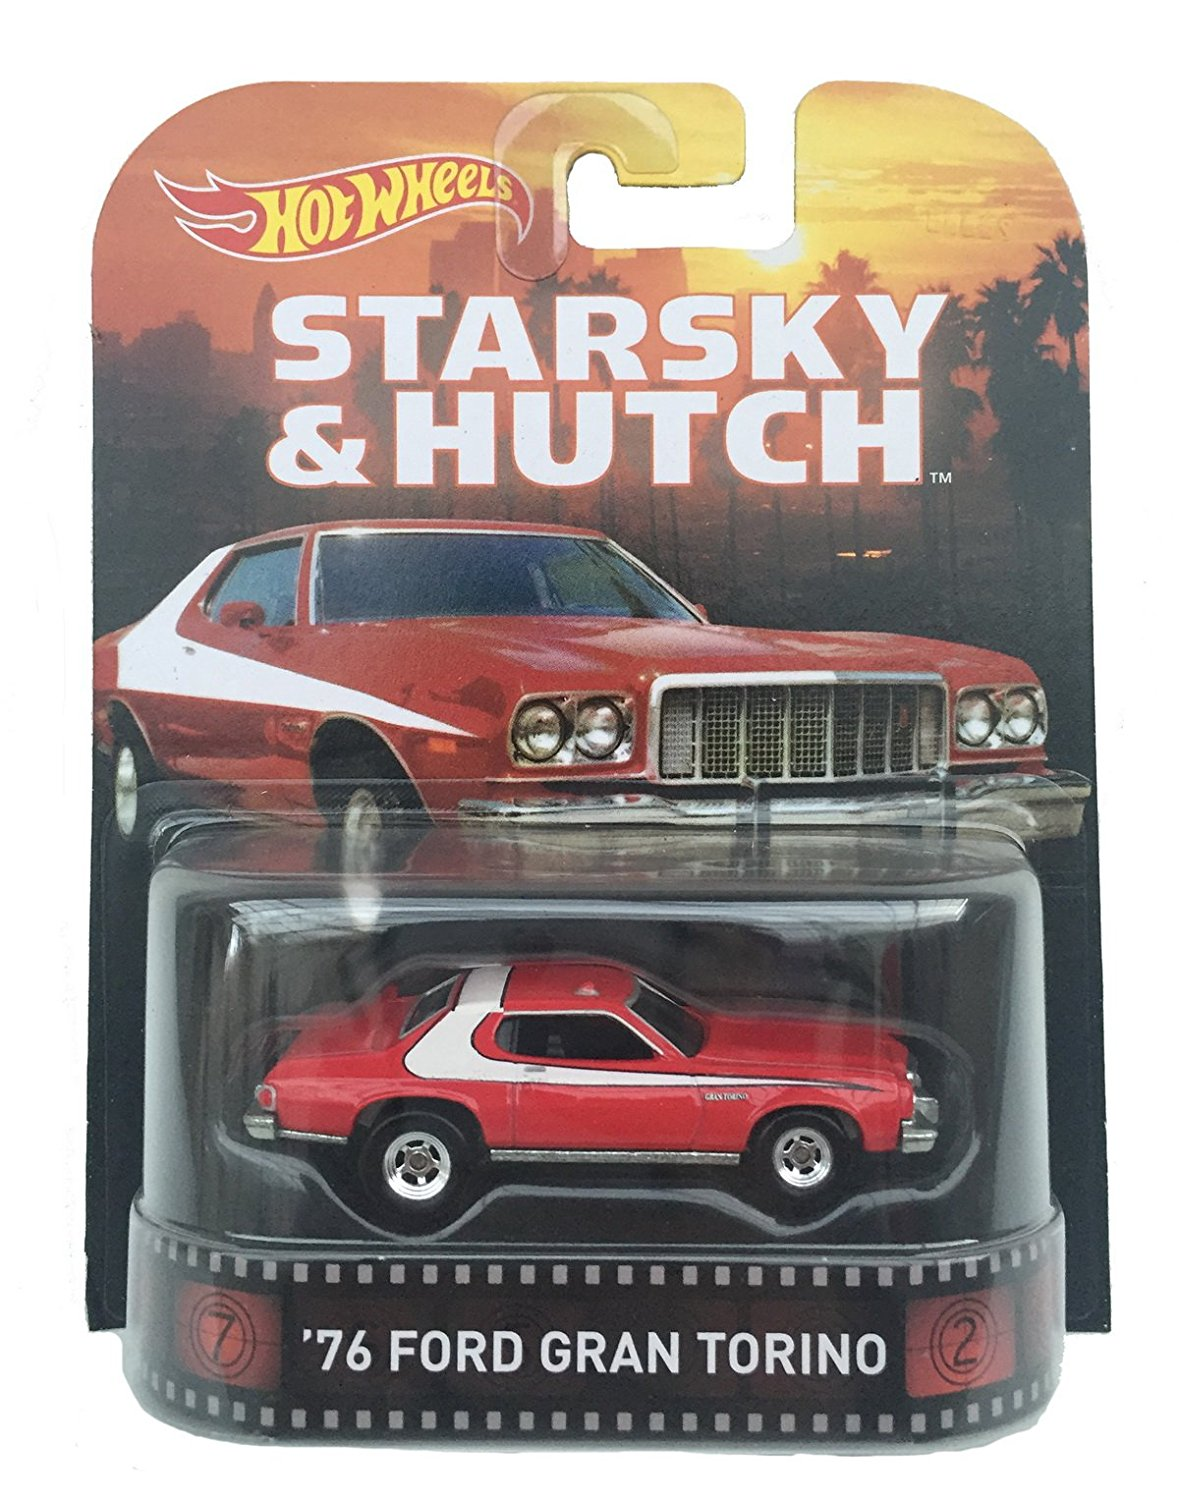 Hot Wheels 1:64 Scale Retro Entertainment Starsky & Hutch 1976 Ford Gran Torino by Hot Wheels